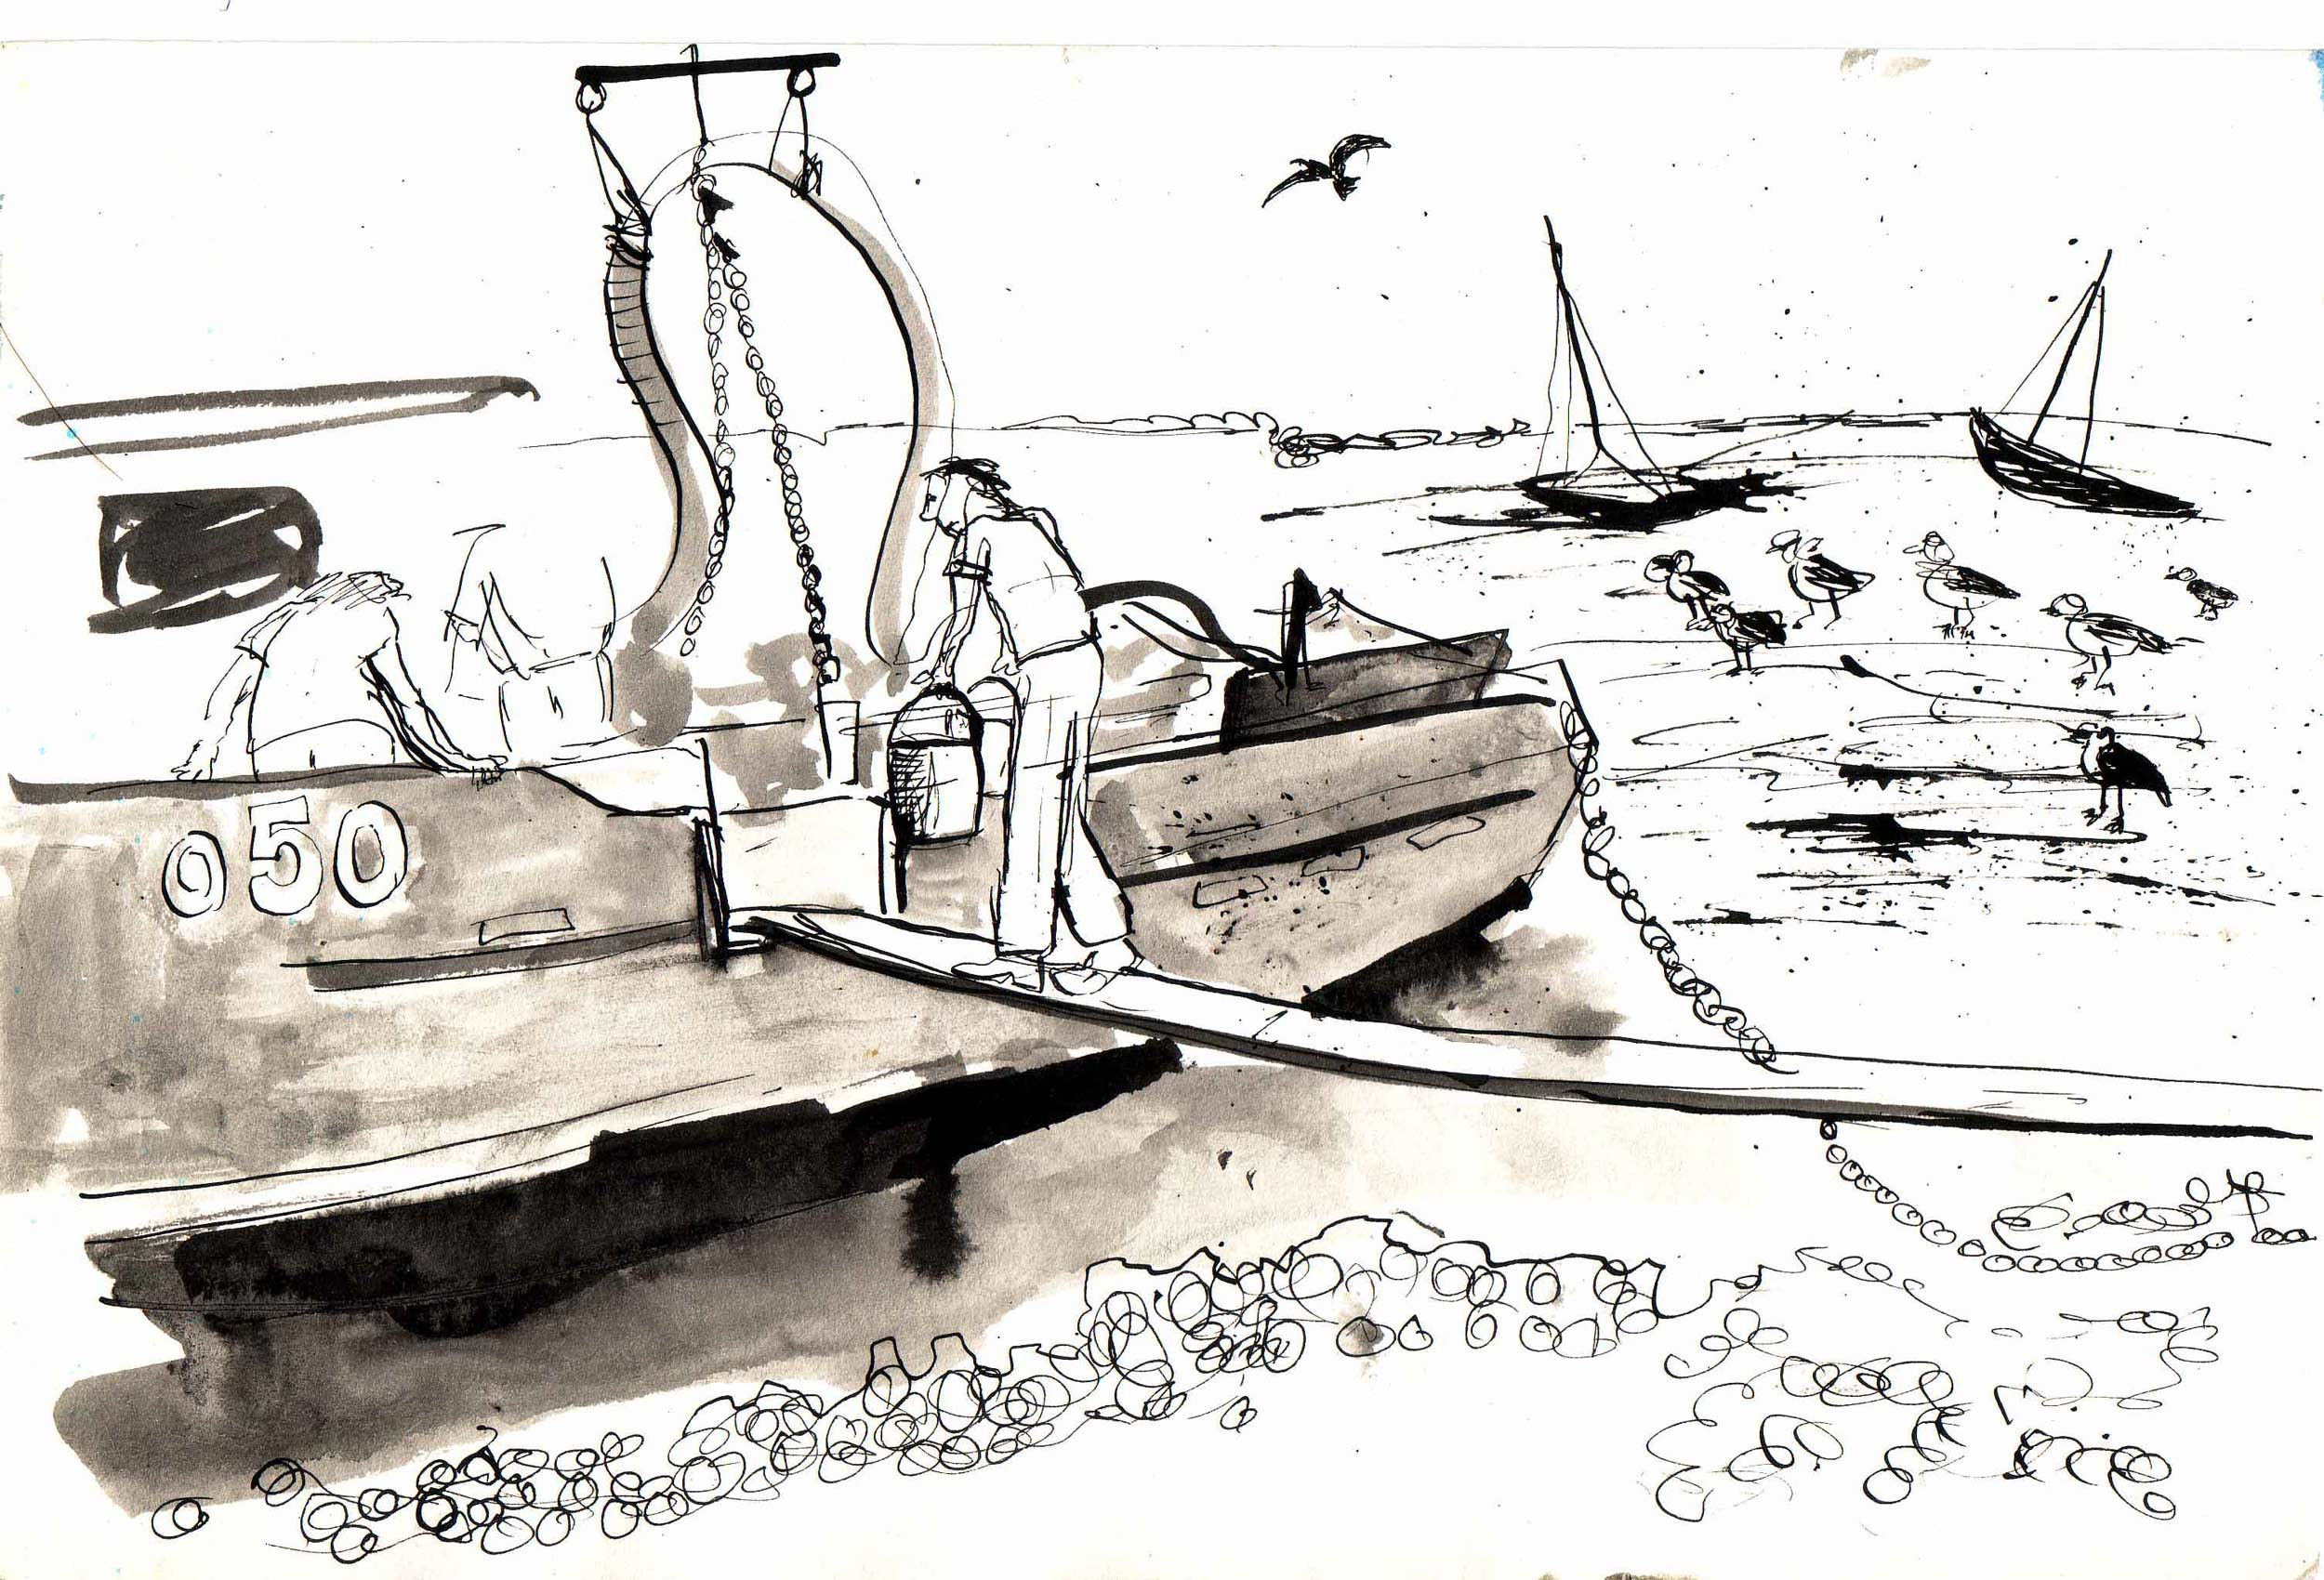 COCKLER-LEIGH-ON-SEA  Pen and Ink wash | 30 x 21 cm | 1994  (available) £40